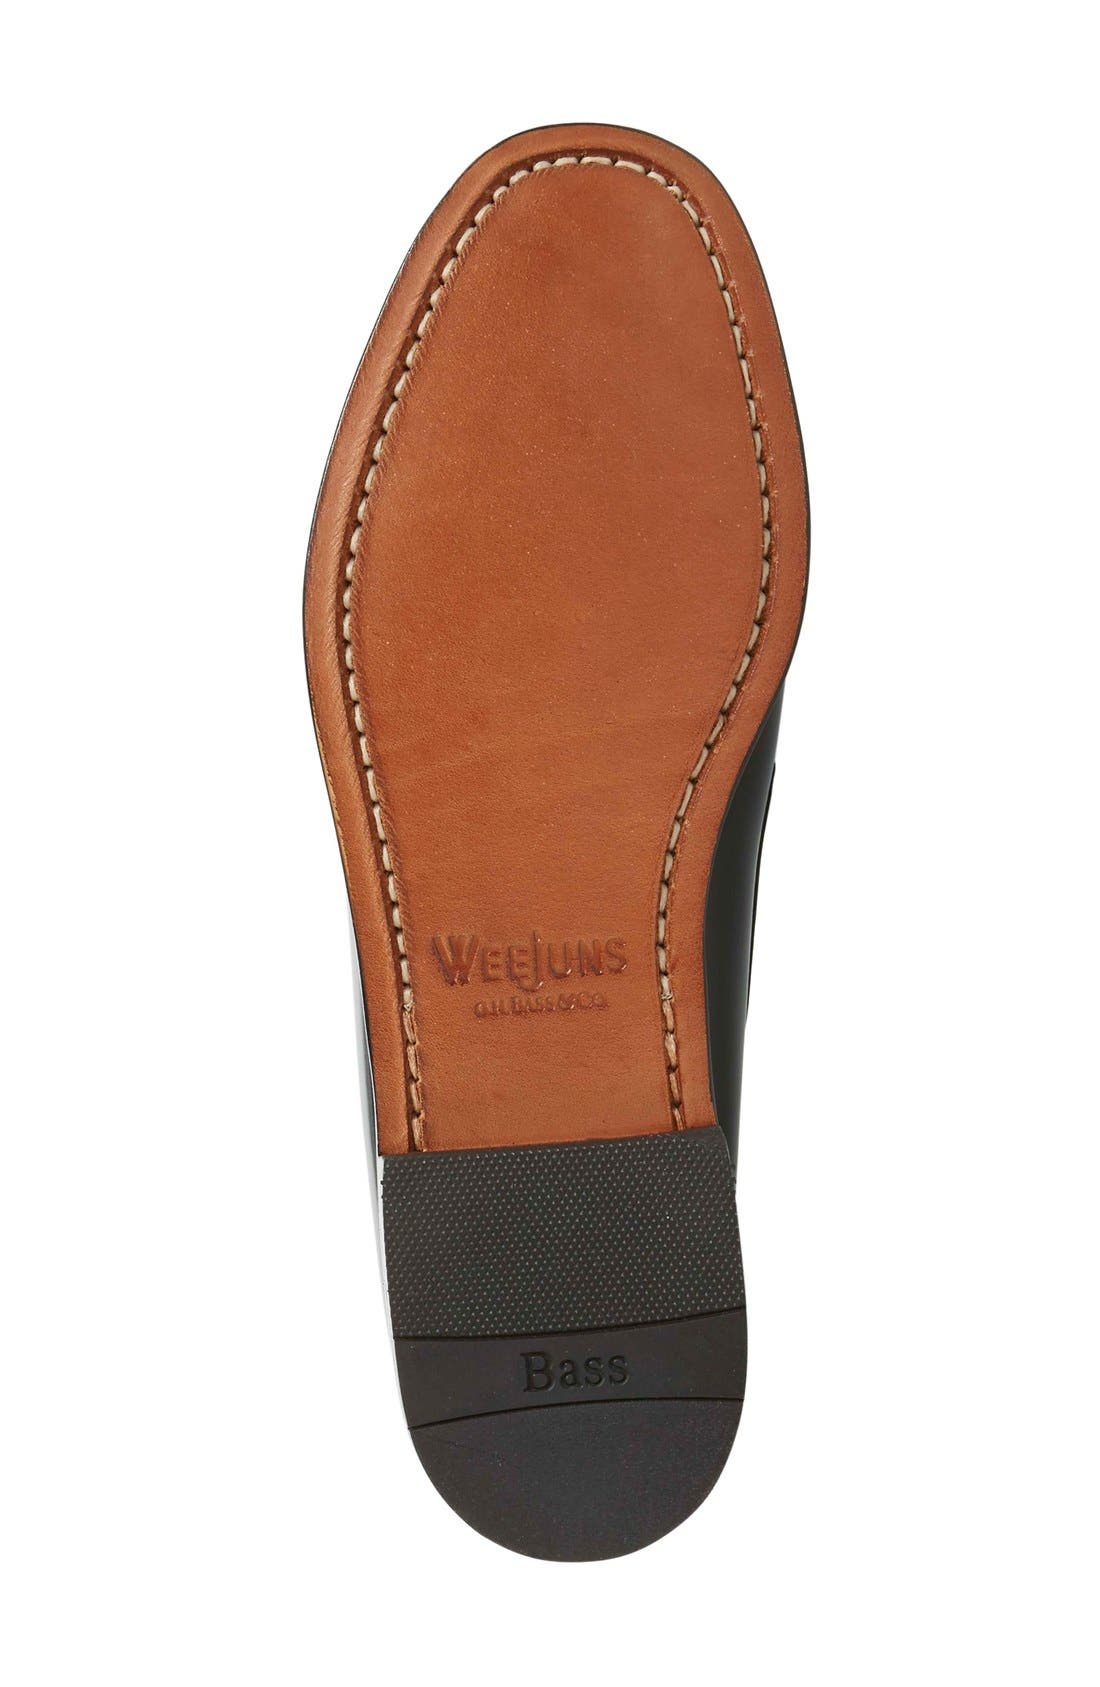 'Larson - Weejuns' Penny Loafer,                             Alternate thumbnail 4, color,                             BLACK LEATHER